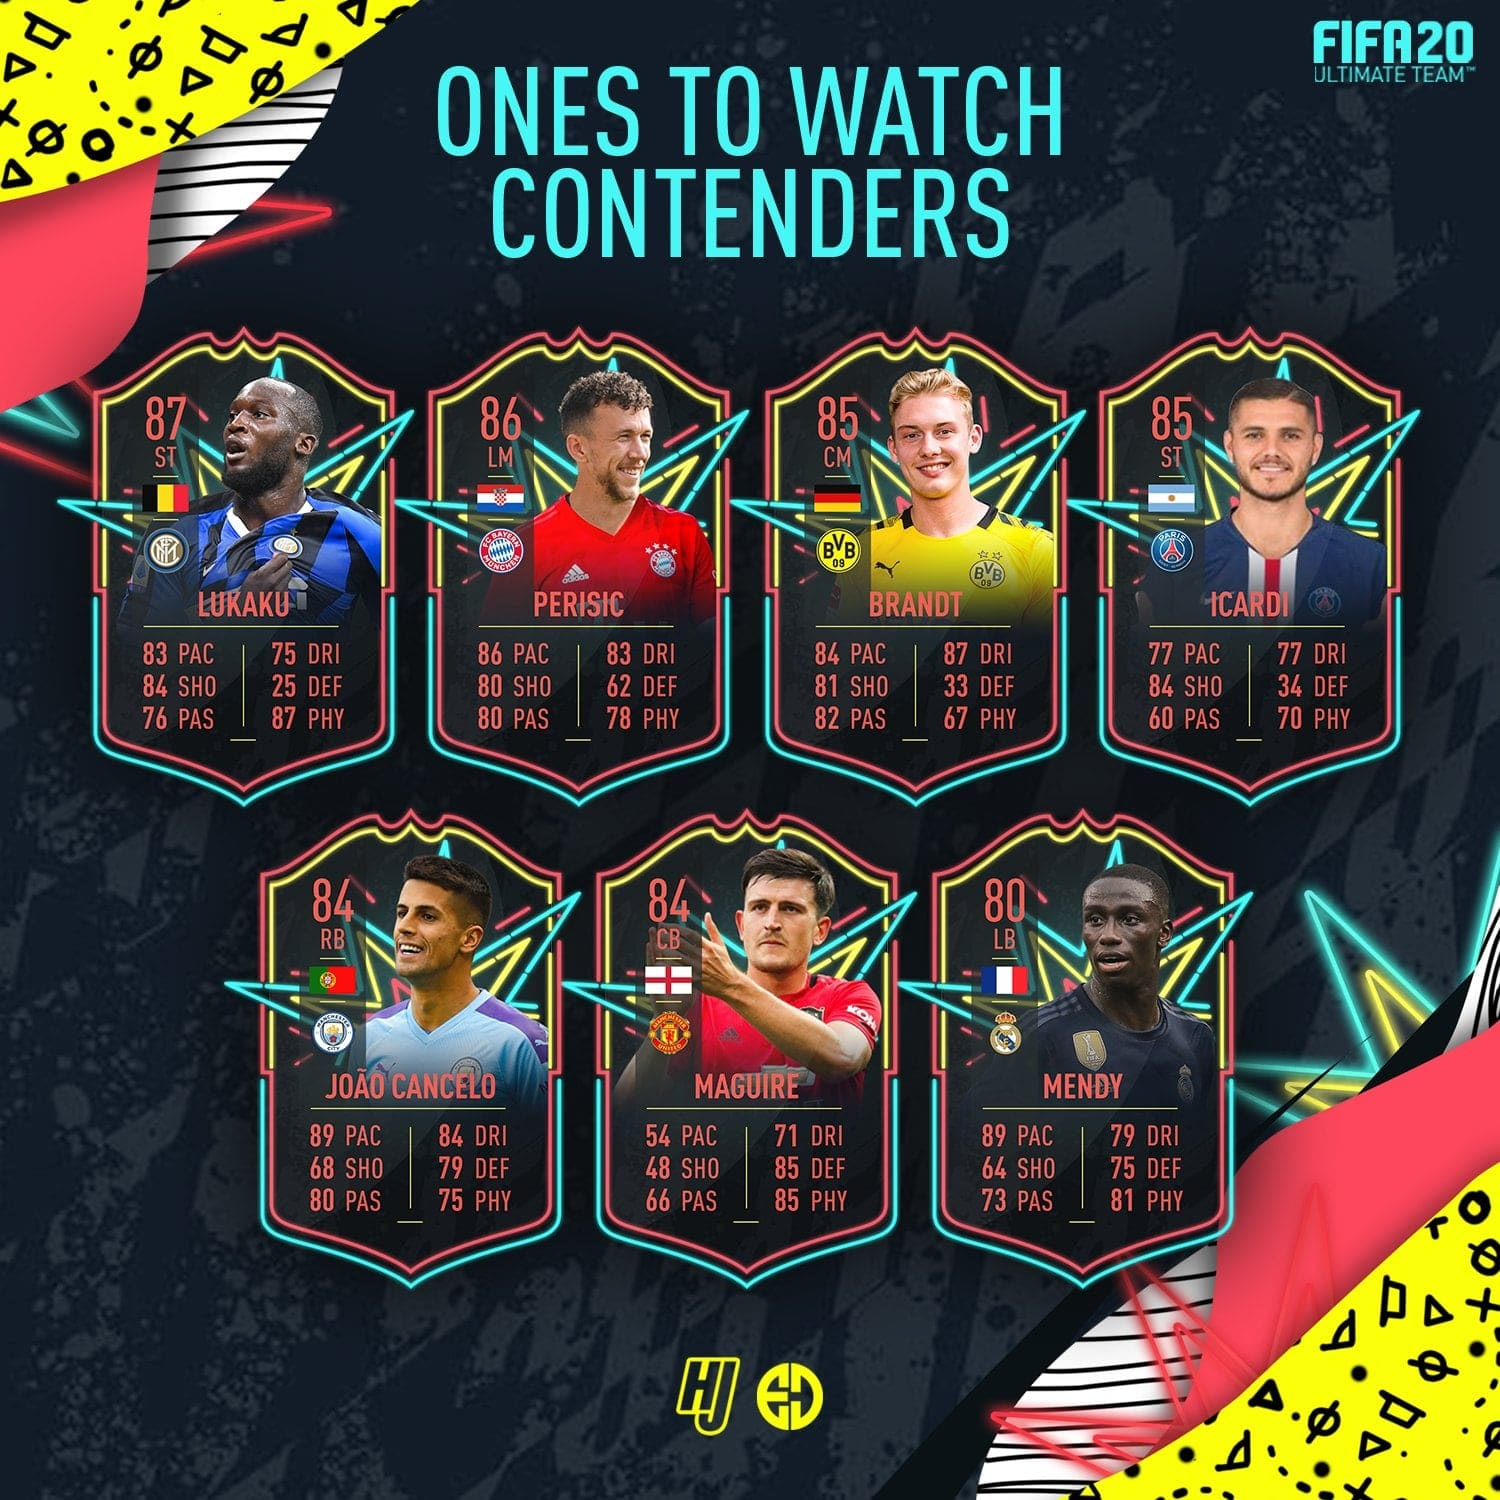 Prediccion Cartas Ones to Watch verano FIFA 20